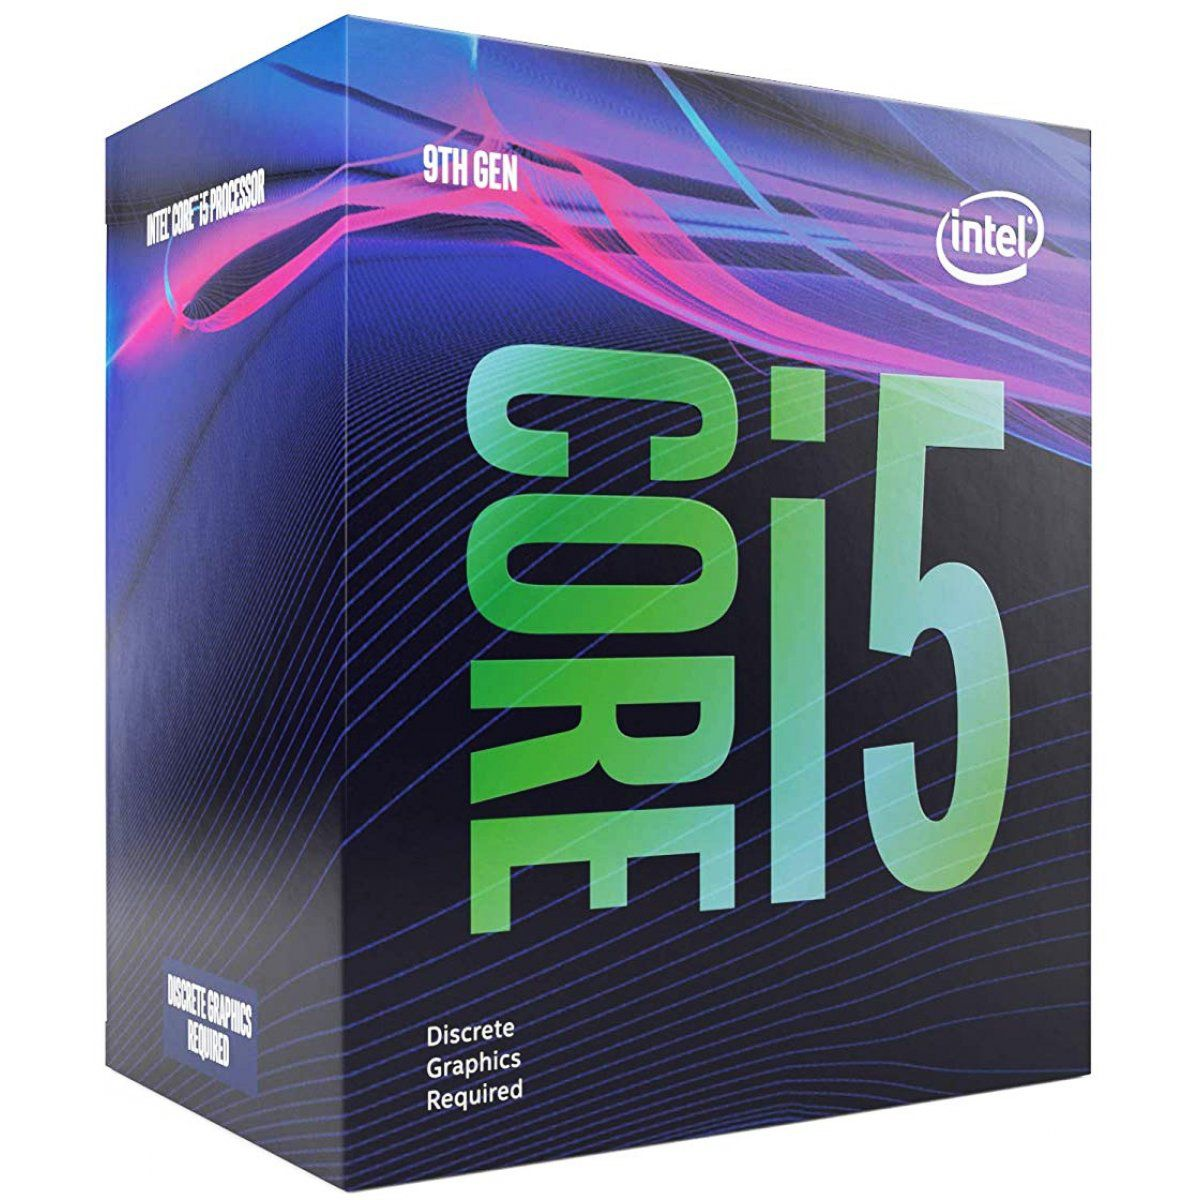 Processador 9ª Geração LGA 1151 i5 9400F 9MB 2.9Ghz 2.9GHz (4.1GHz Turbo) (Sem Video Integrado) BX80684I59400F Box - Intel